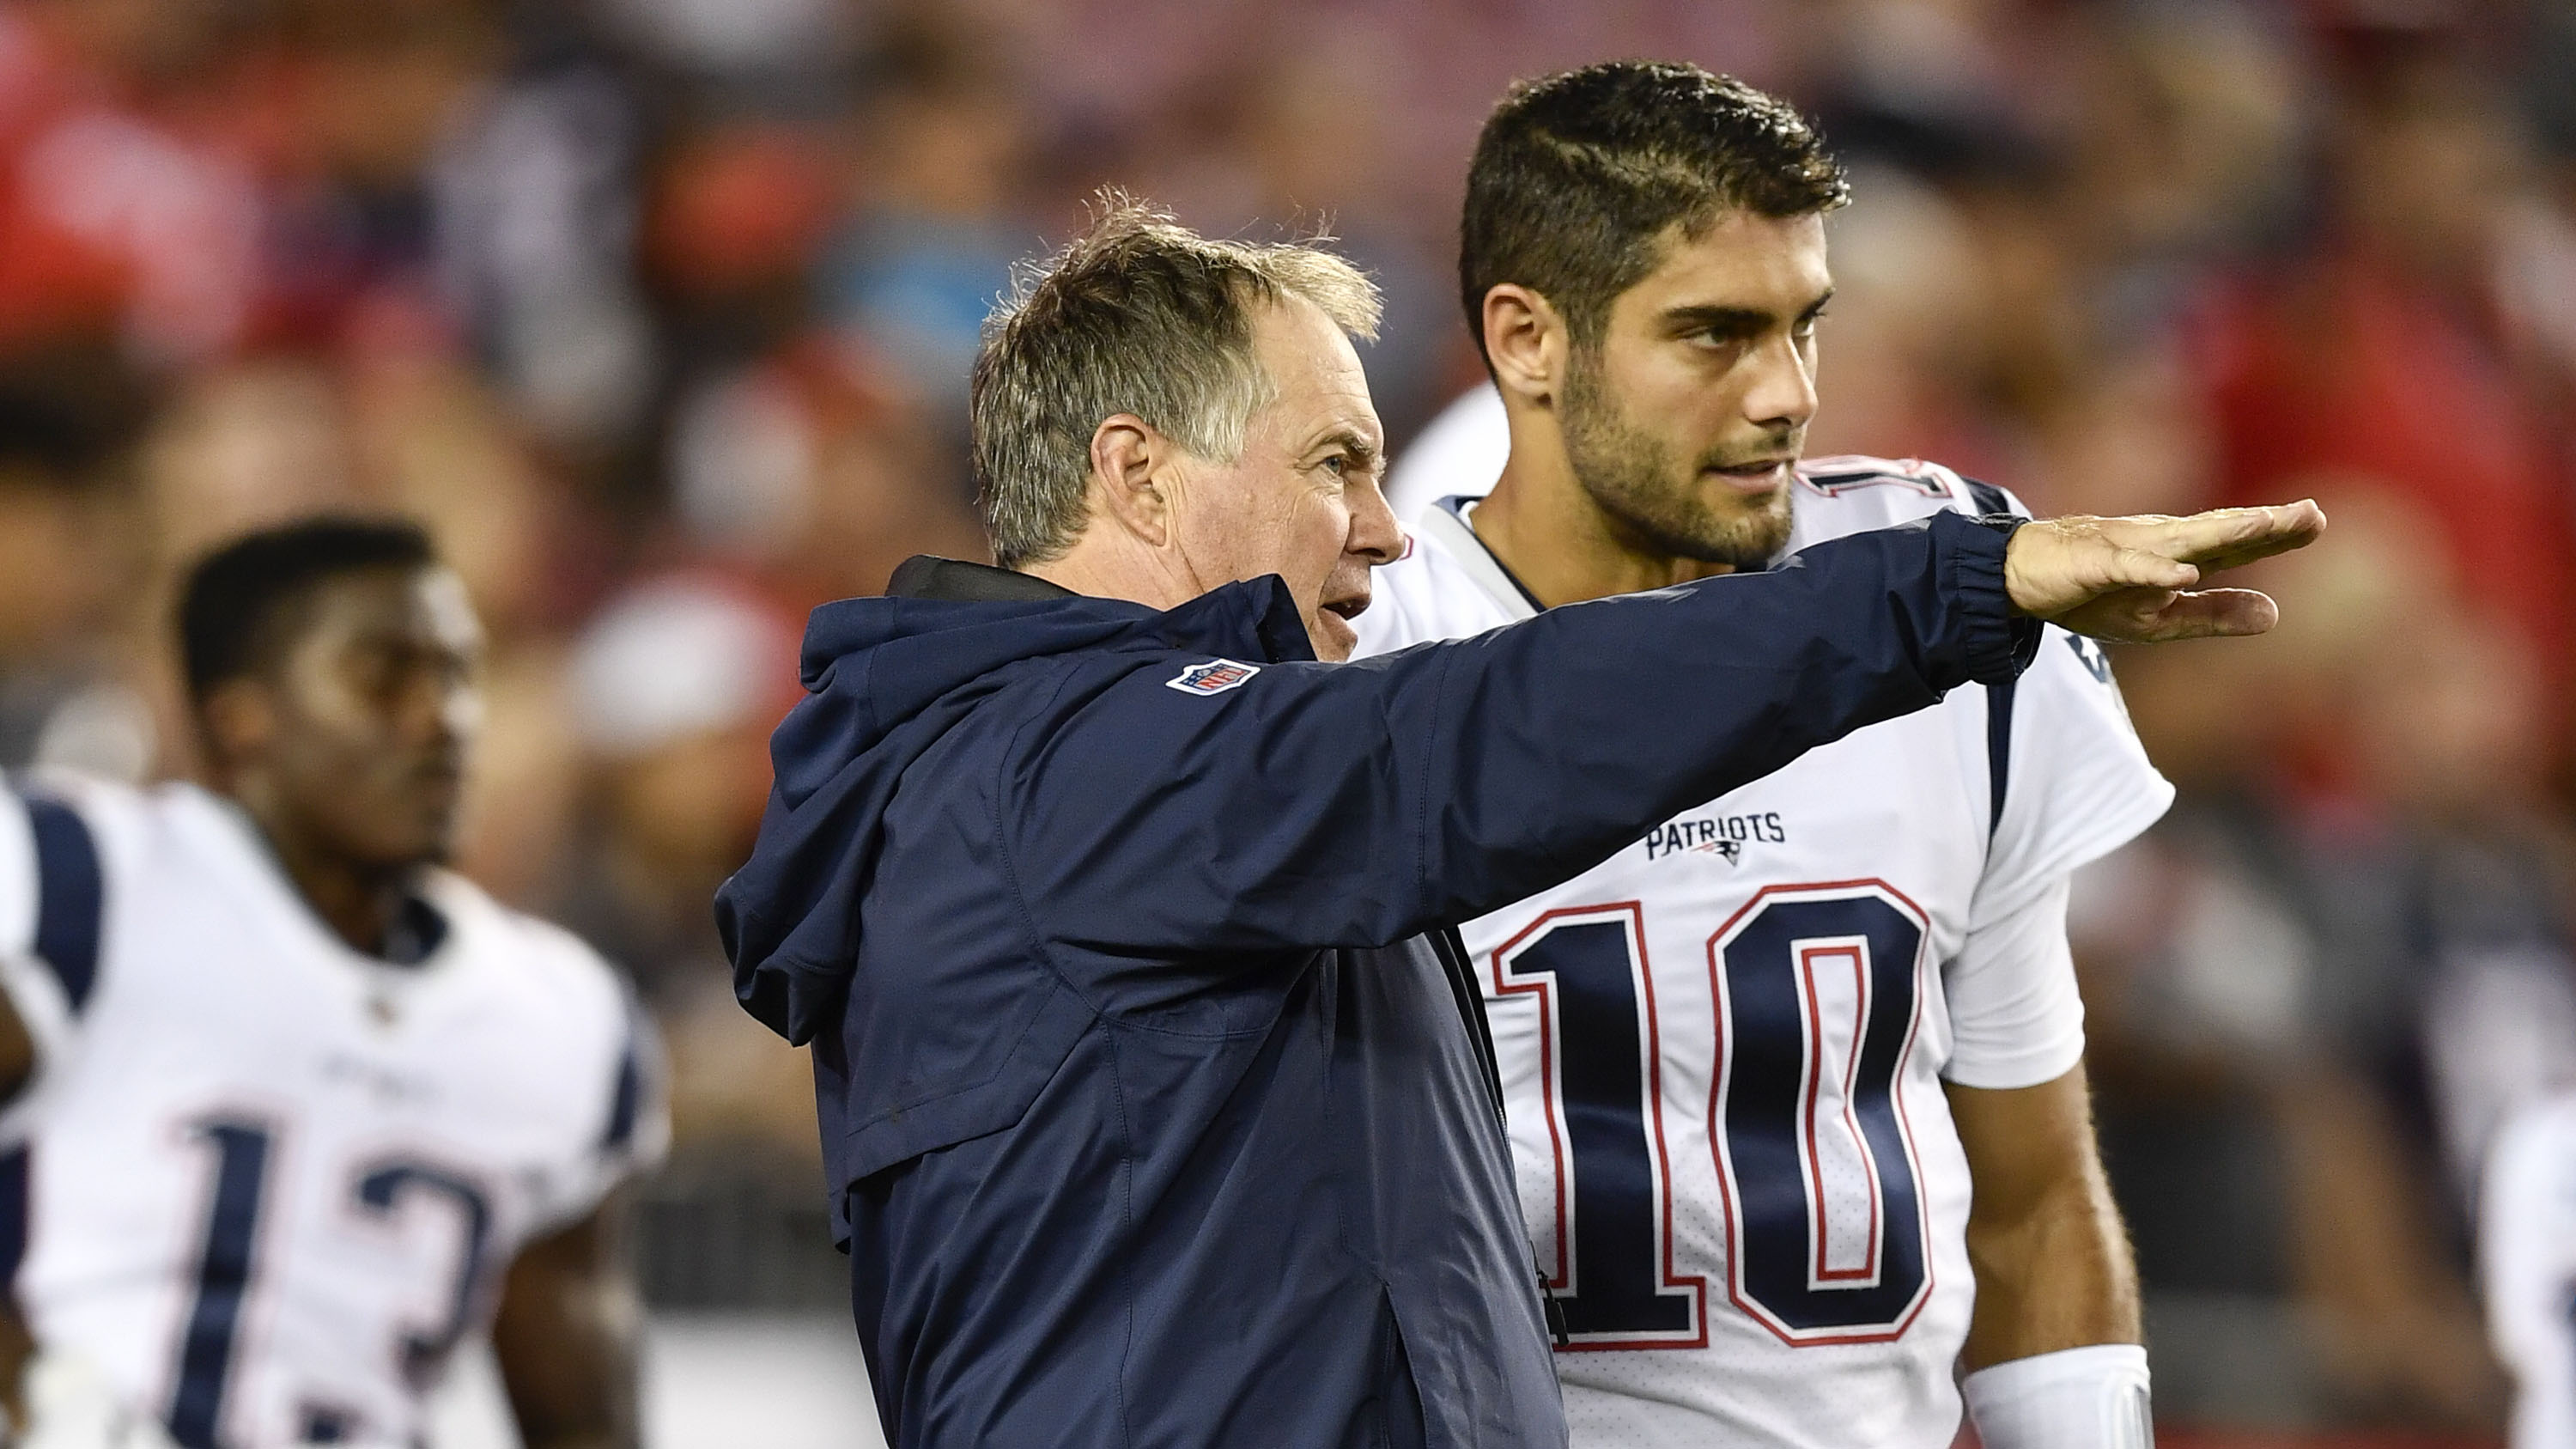 After shuffle in NFL draft, could Garoppolo be headed back to New England?